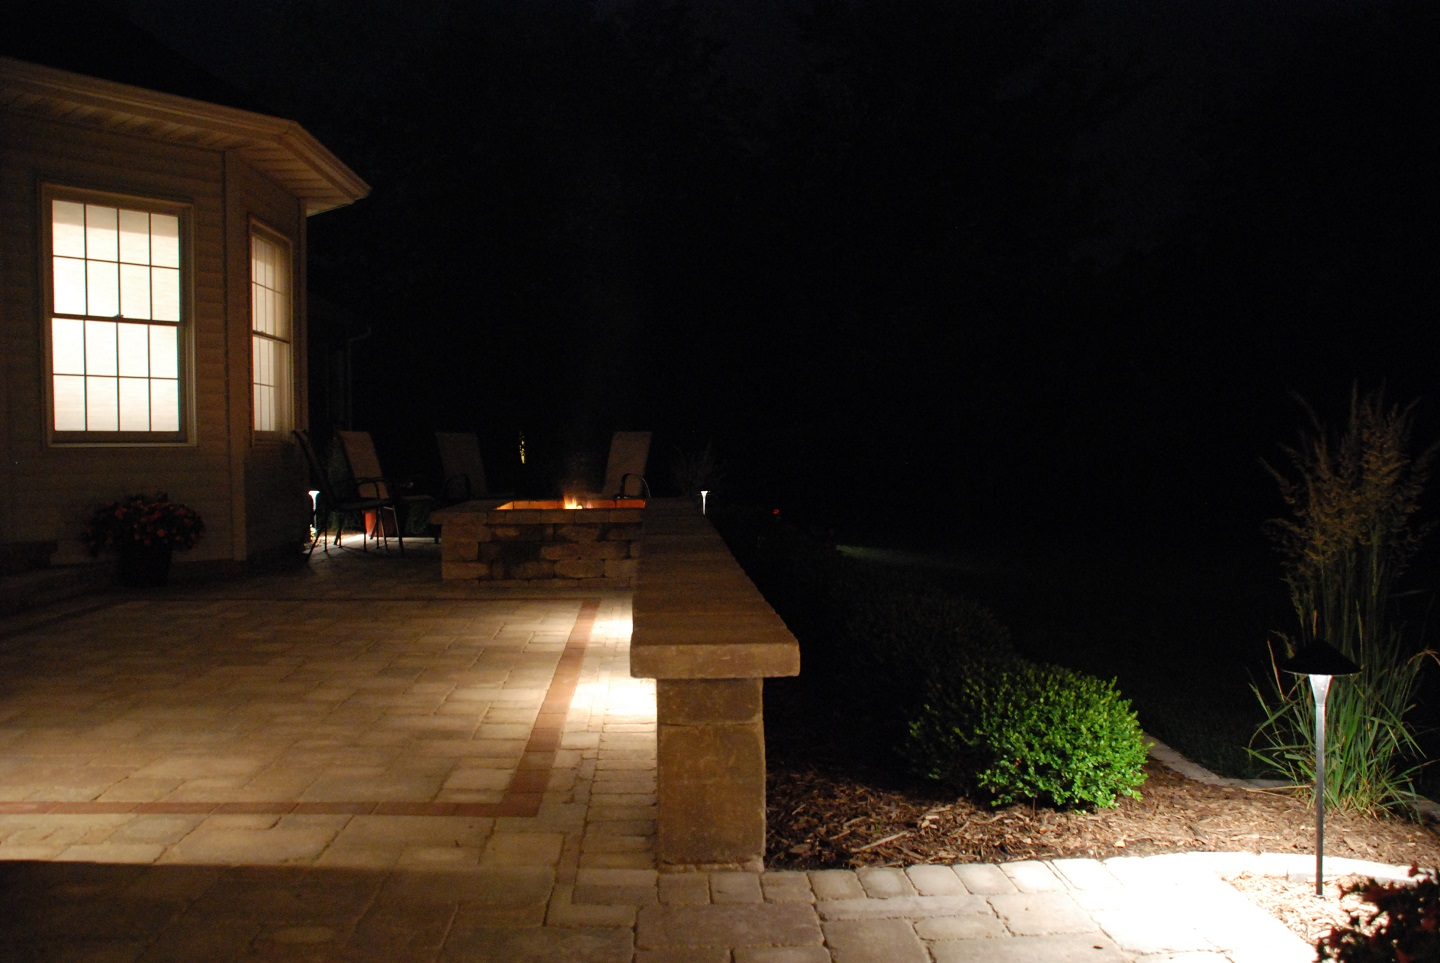 East Peoria, IL top outdoor lighting landscaping company